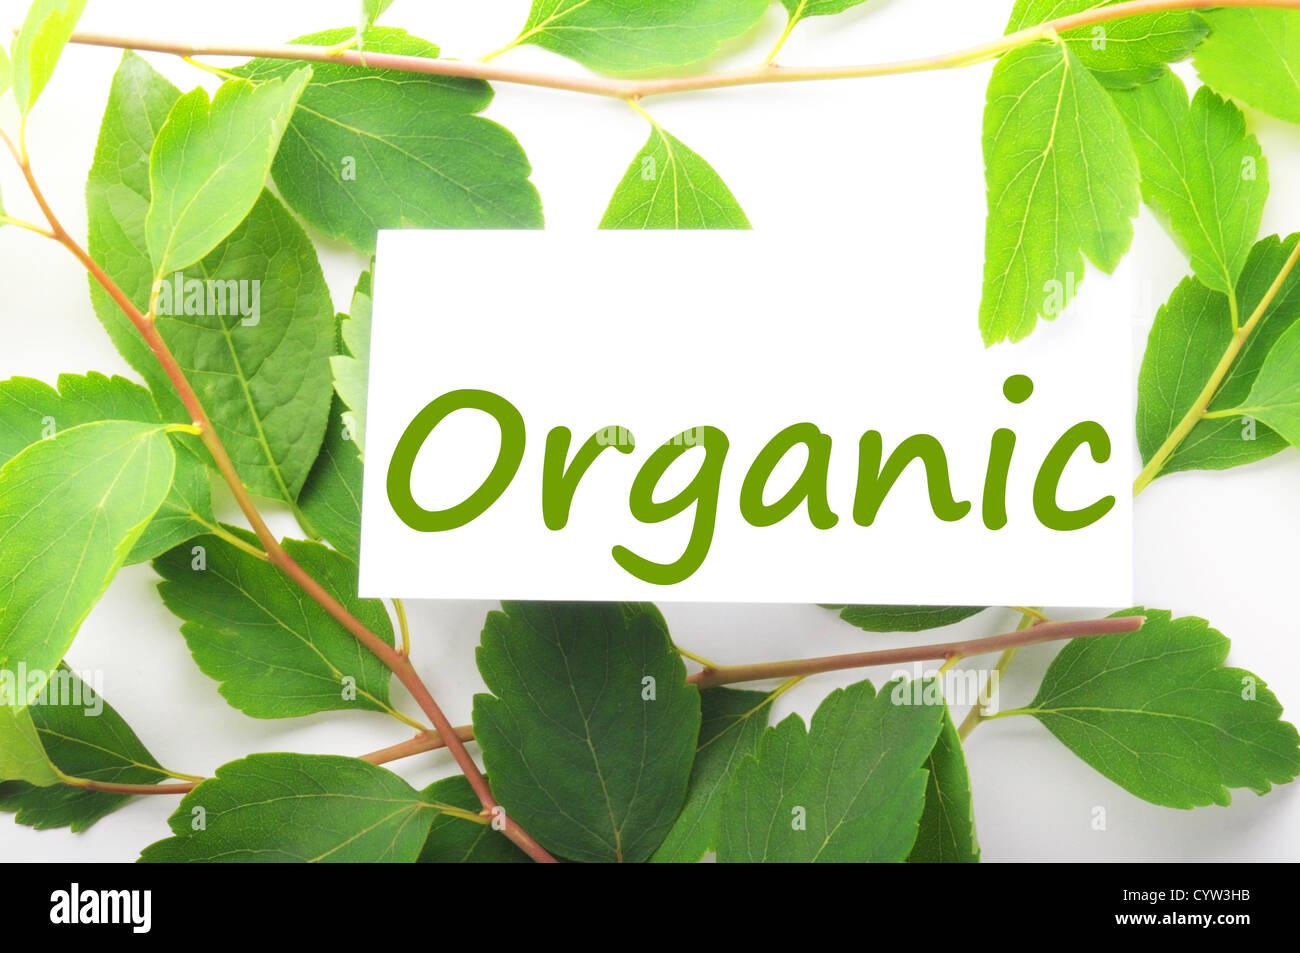 organic concept with word on nature still life - Stock Image